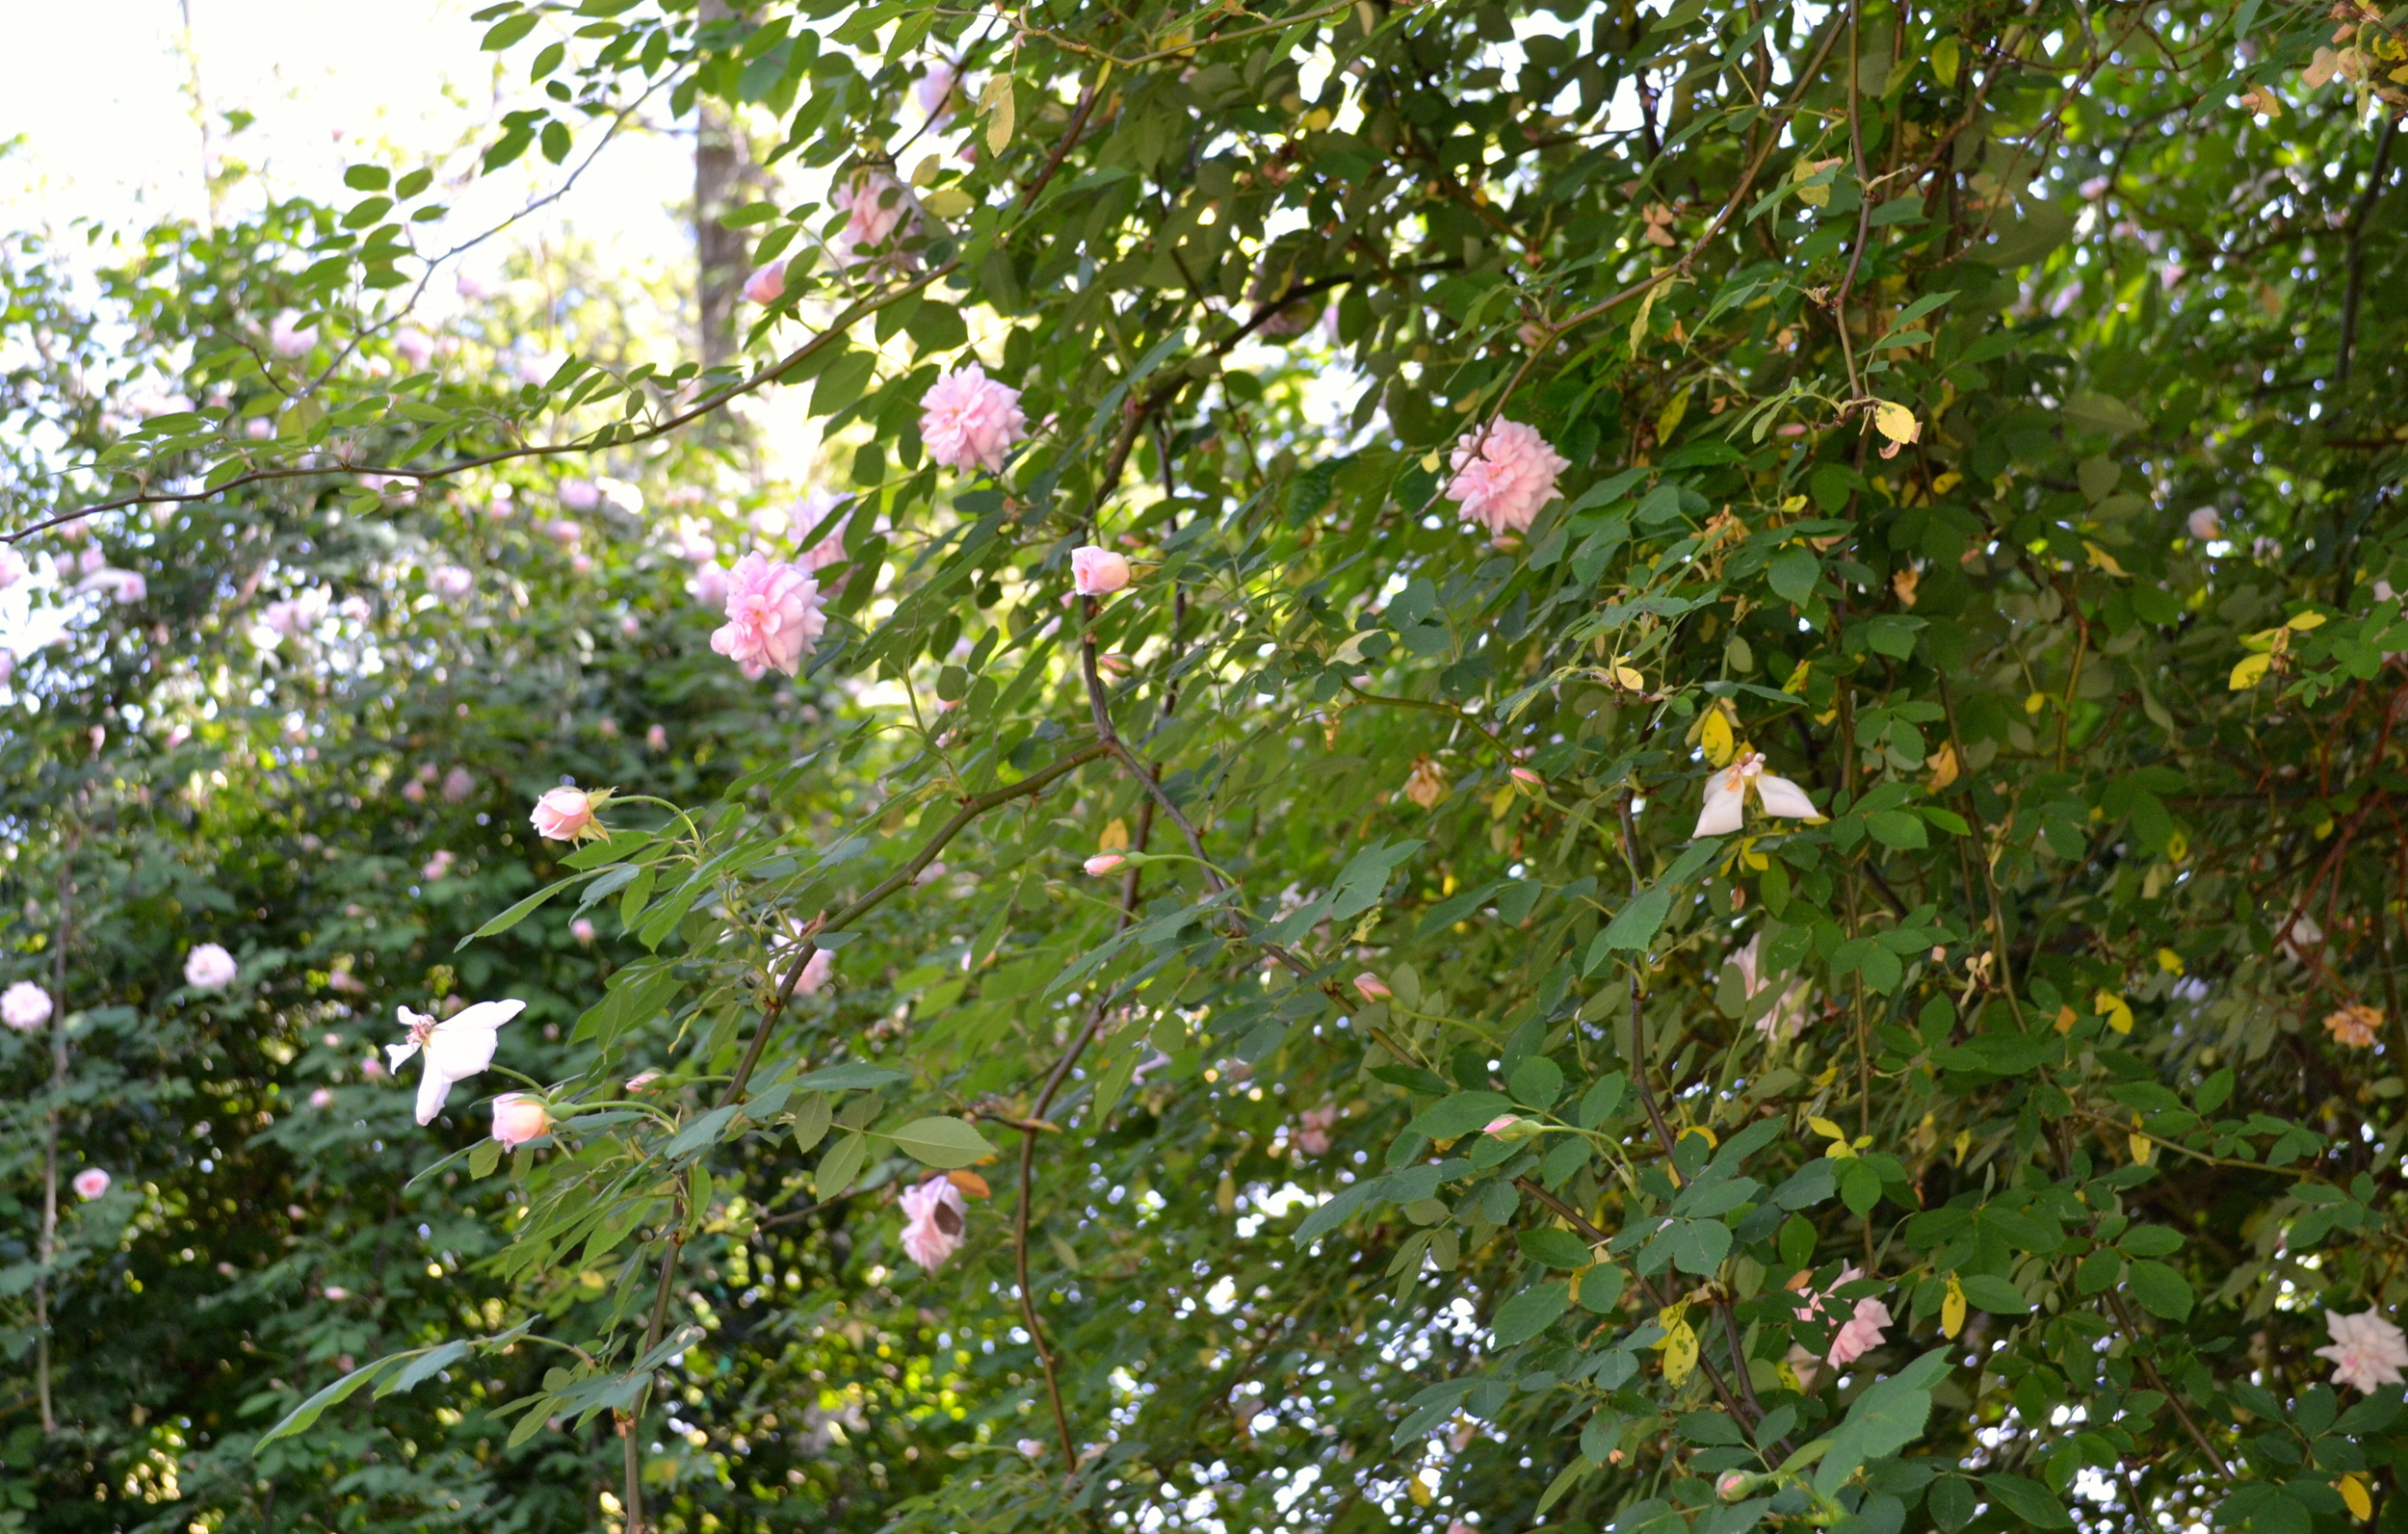 Heirloom roses are favorites on Elm Street.